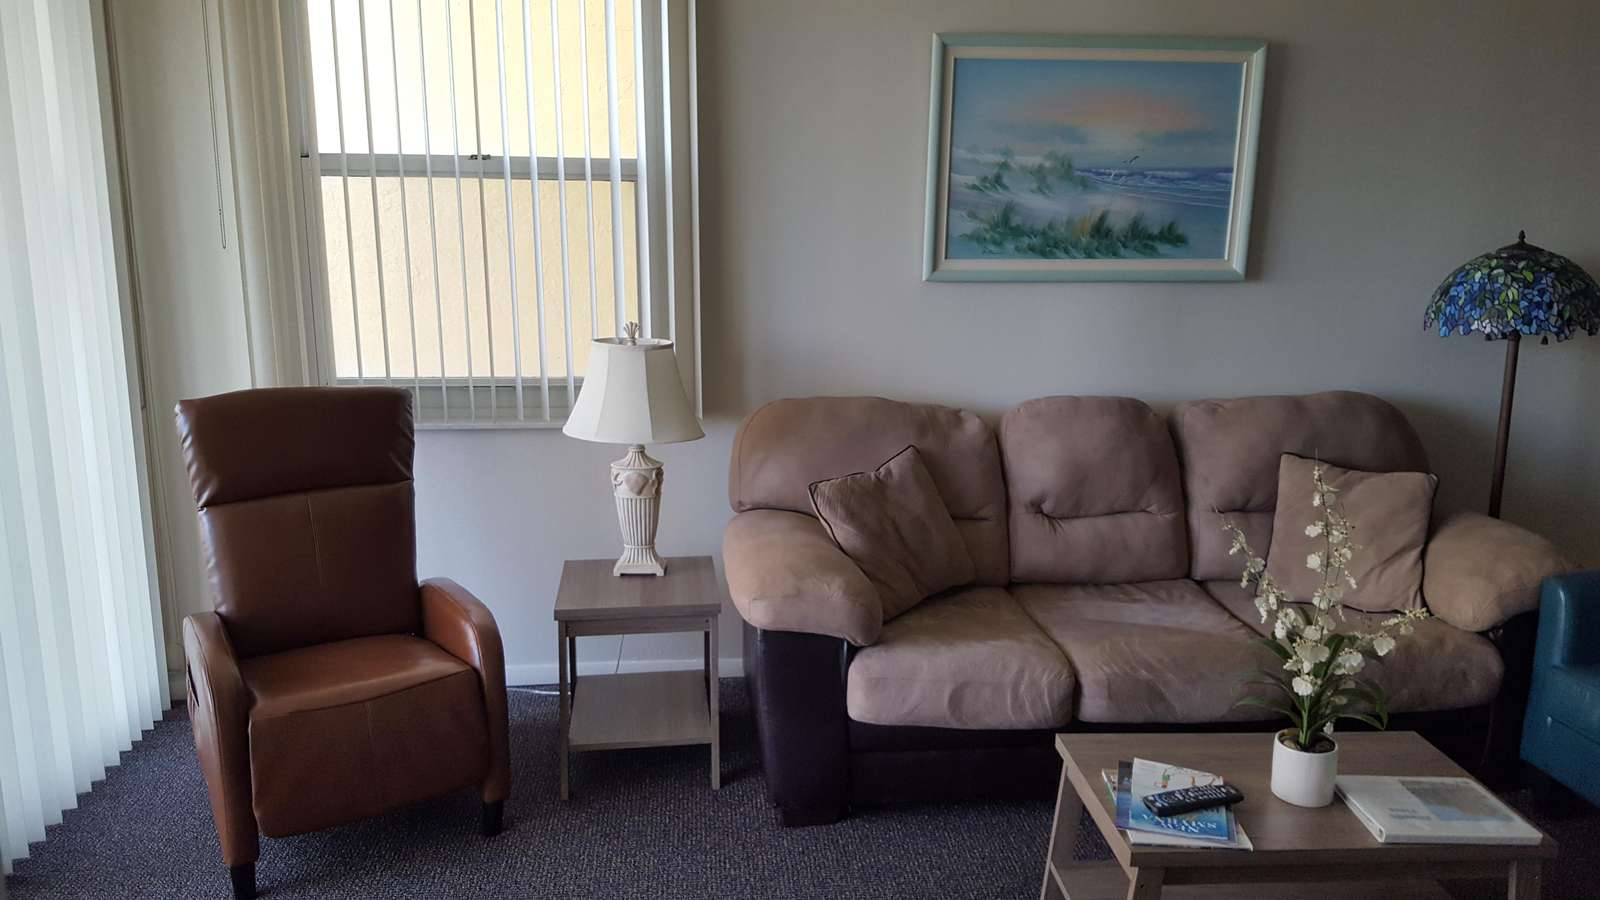 One recliner in living room